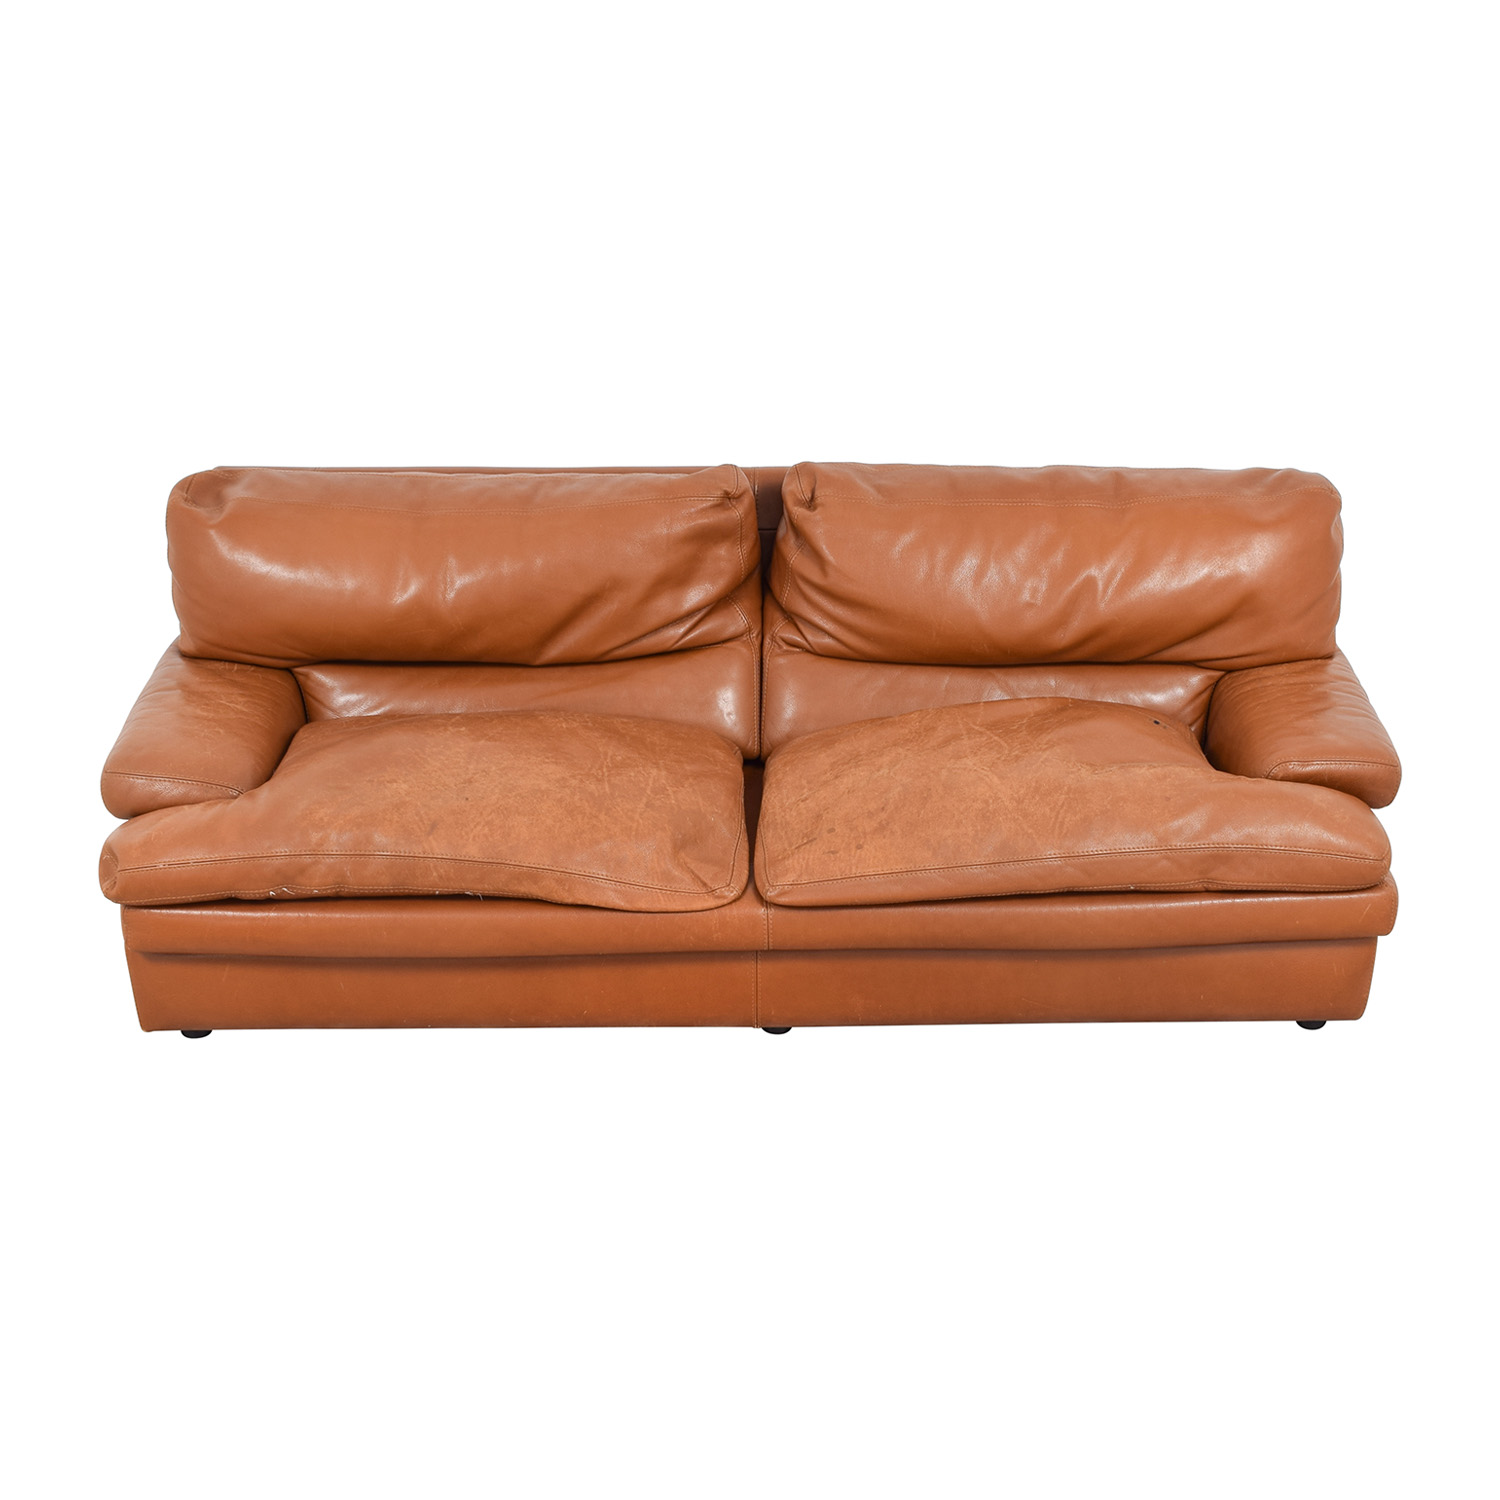 Roche Bobois Solde Buy Leather Sofa Used Furniture On Sale